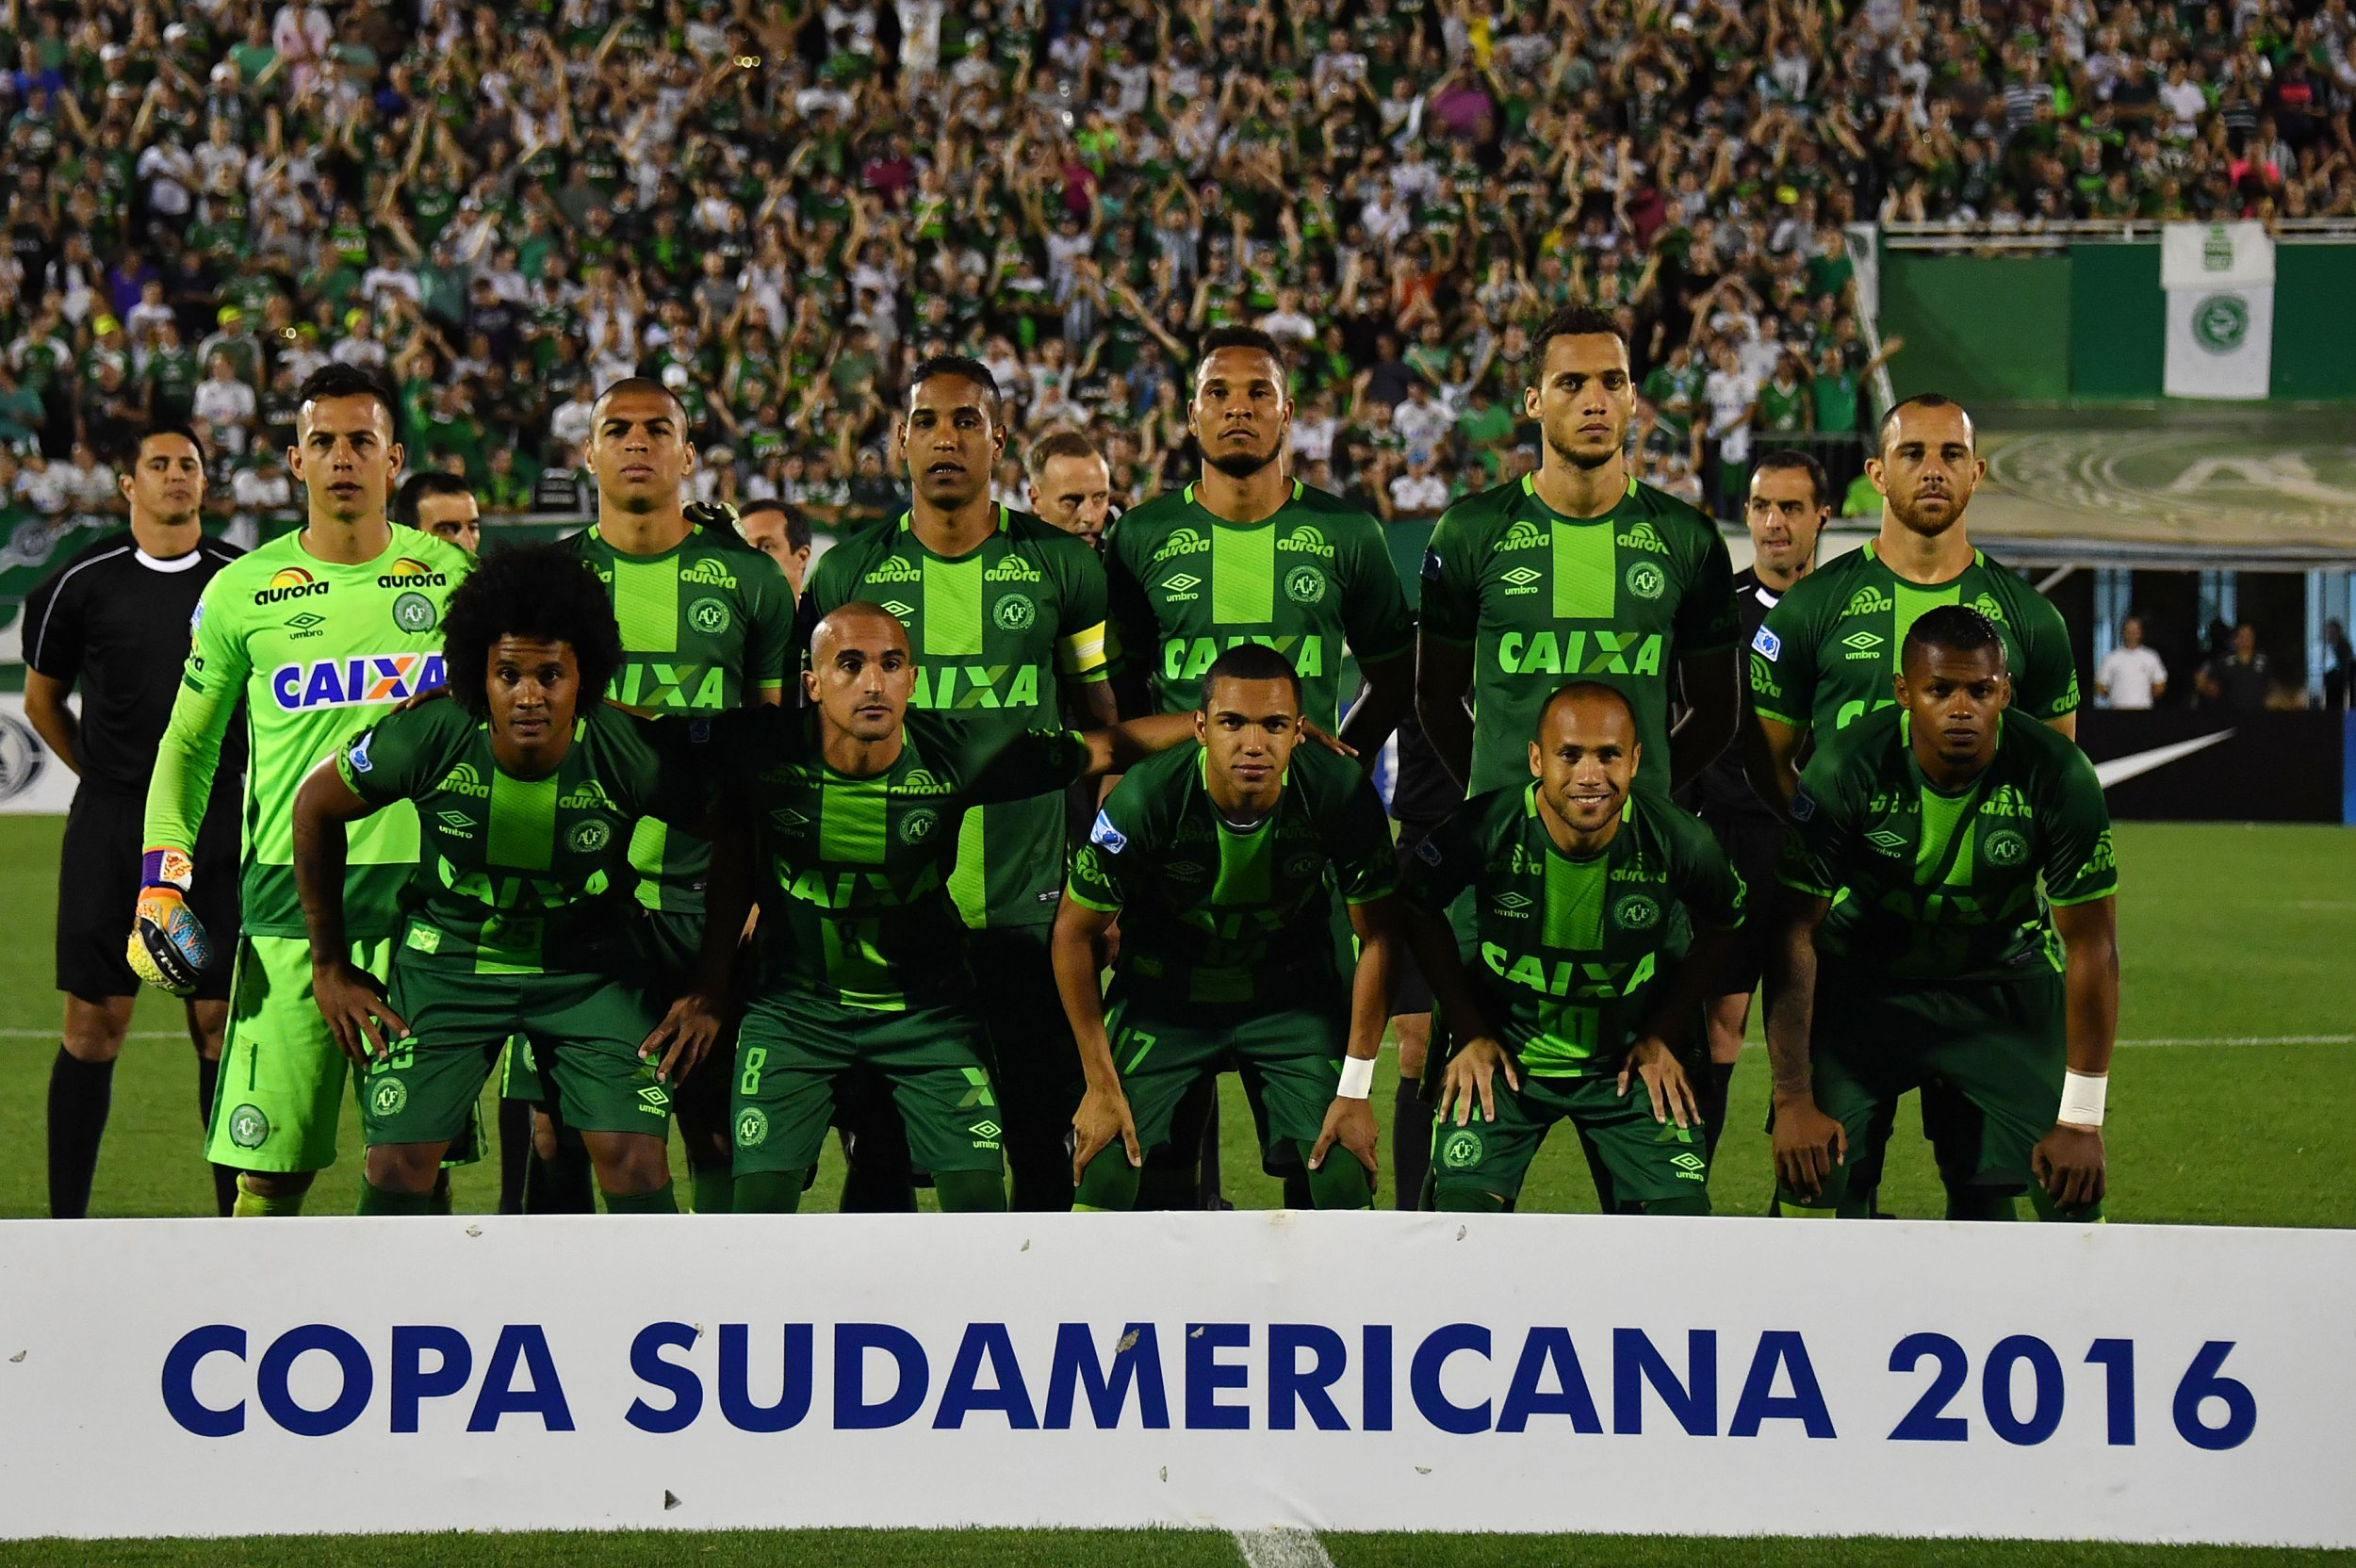 Brazilian football team Chapecoense poses for pictures.